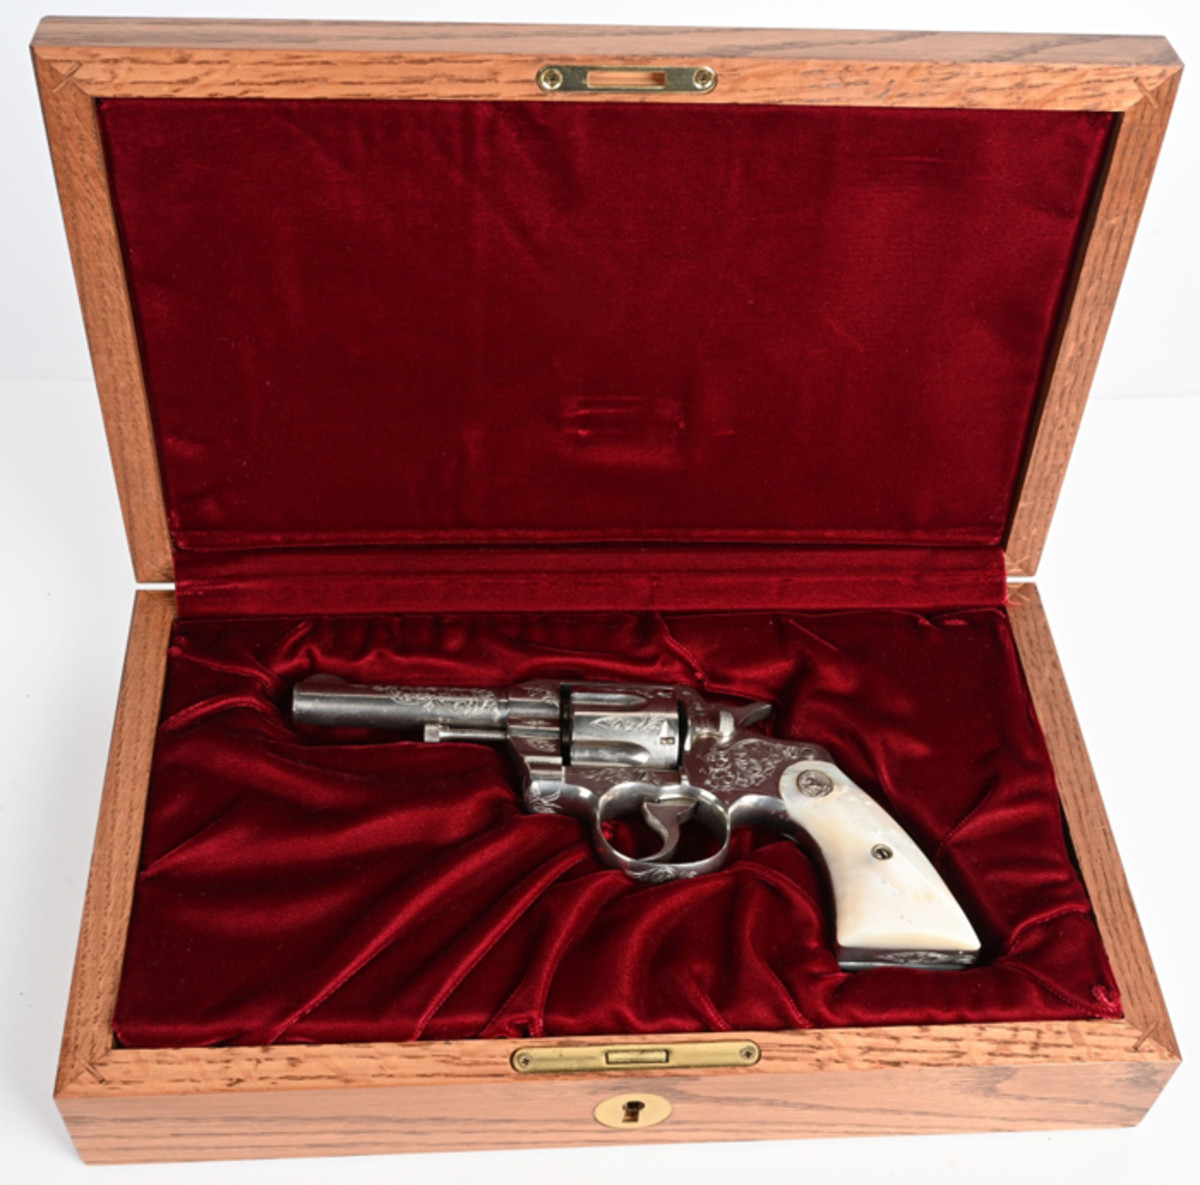 Colt .38-caliber Army Special revolver factory-engraved by William Gough (or his shop). Manufactured in 1924 and shipped to Walter G. Clarke Co., Omaha, Nebraska. Like-new bore and action. Modern Colt walnut display case.